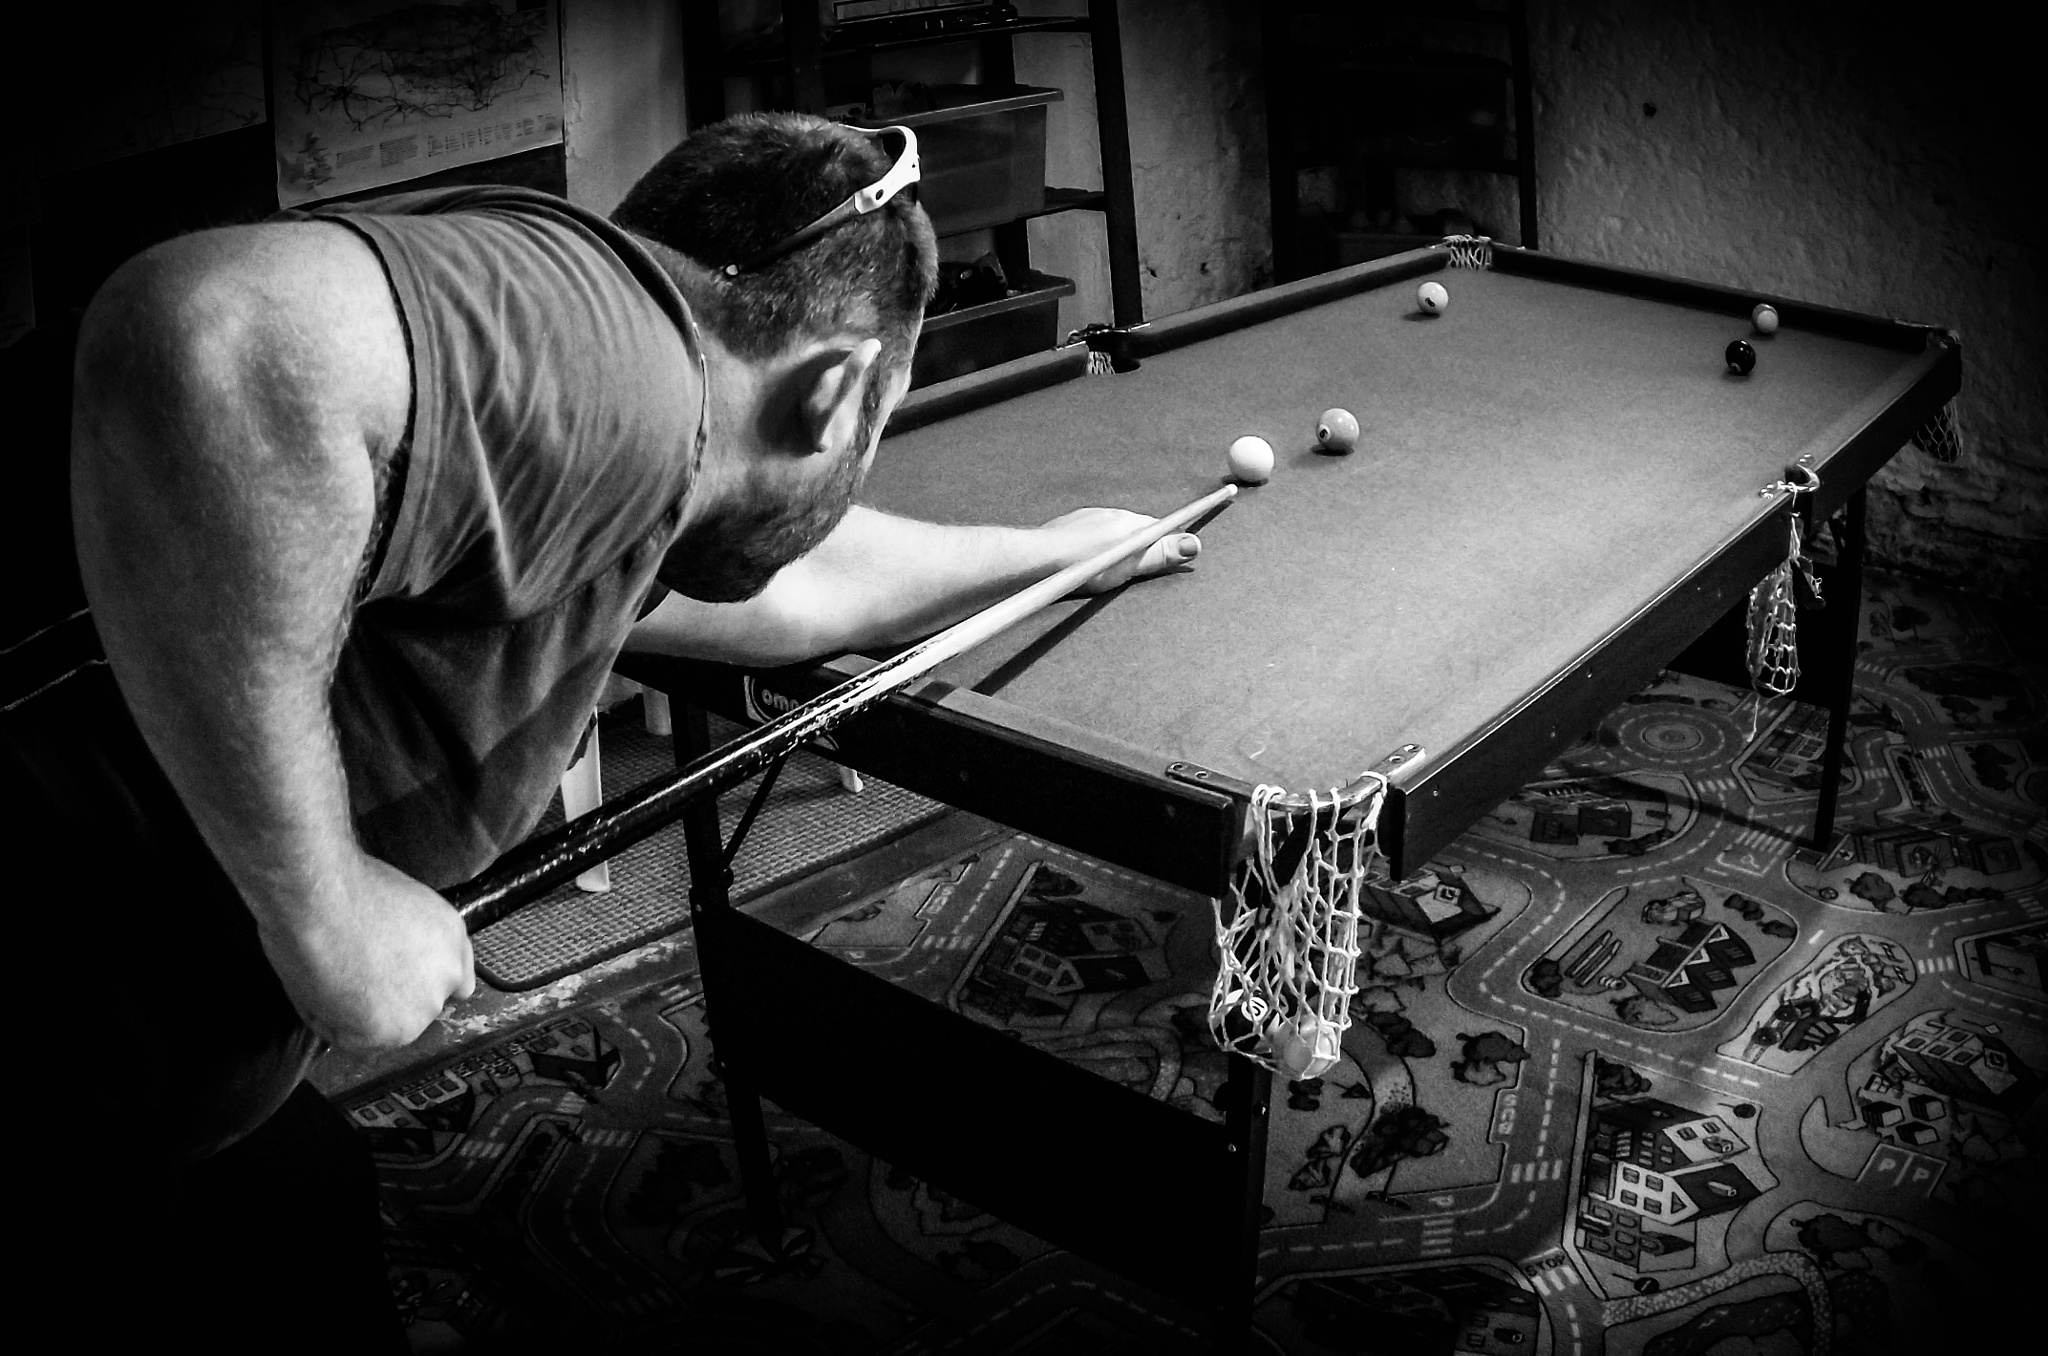 a game of pool by Gemma Sizer